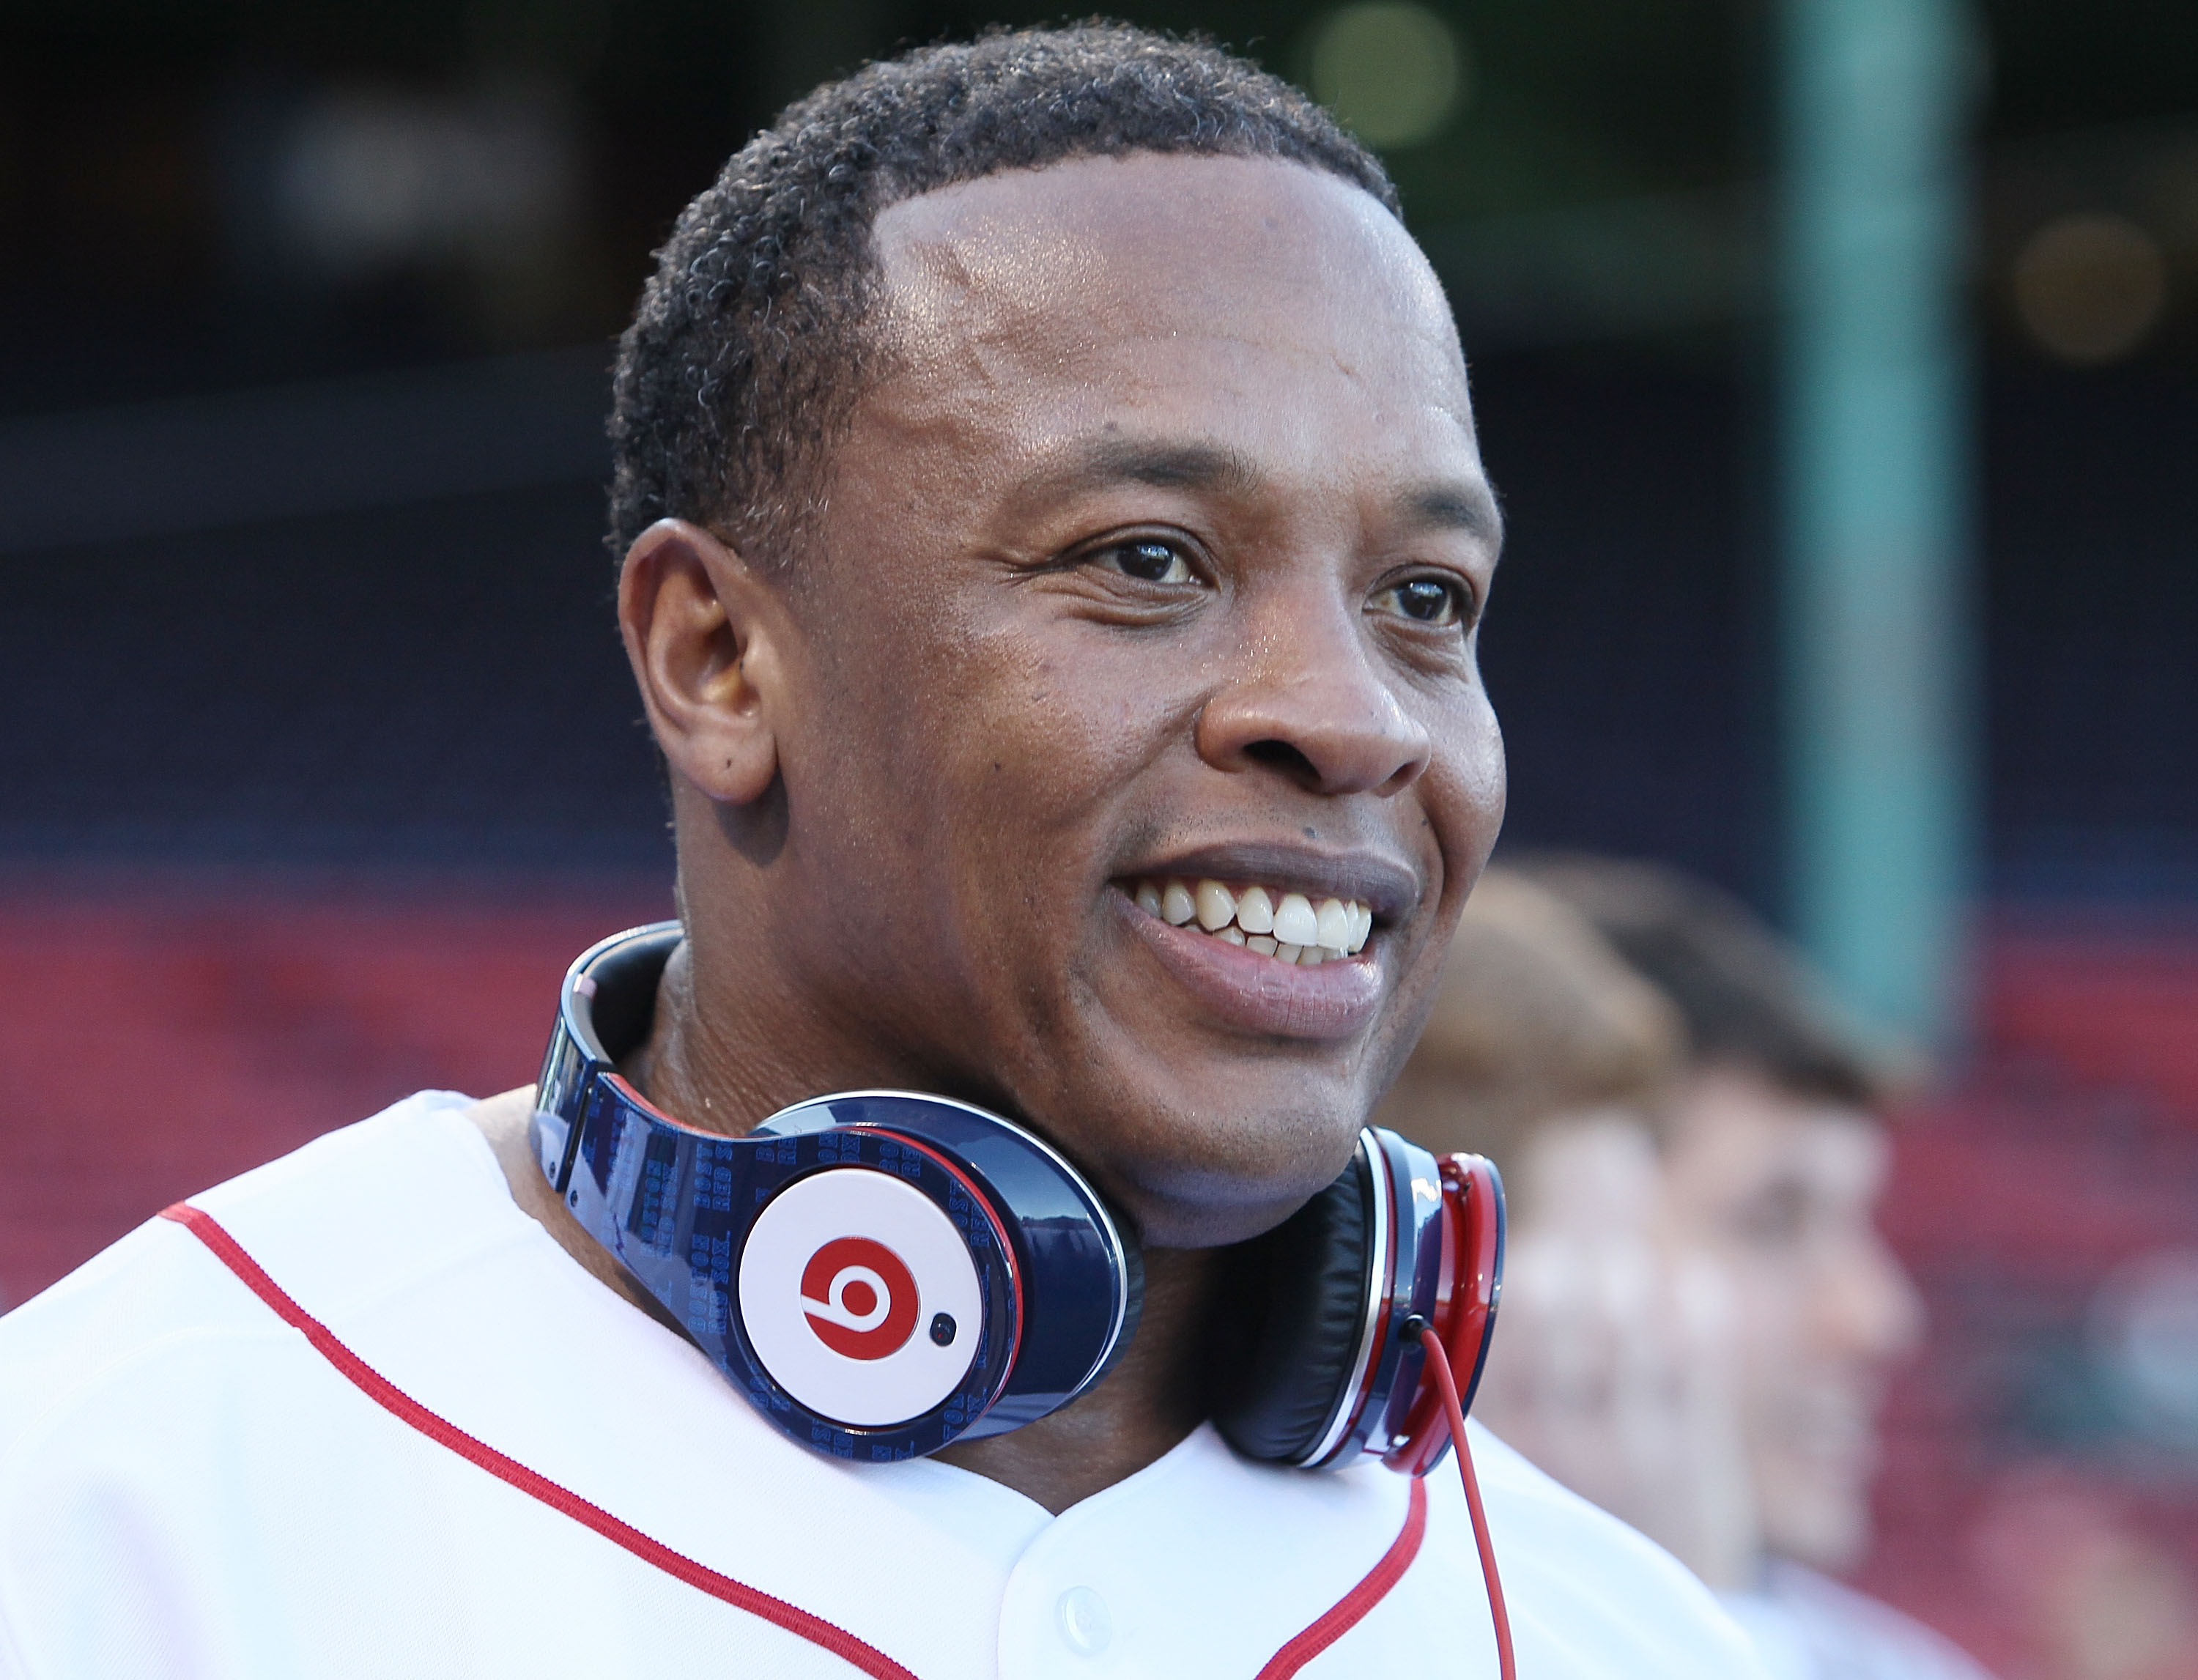 Producer and musician Dr. Dre is on the field before the Boston Red Sox take on the the New York Yankees on April 4, 2010.